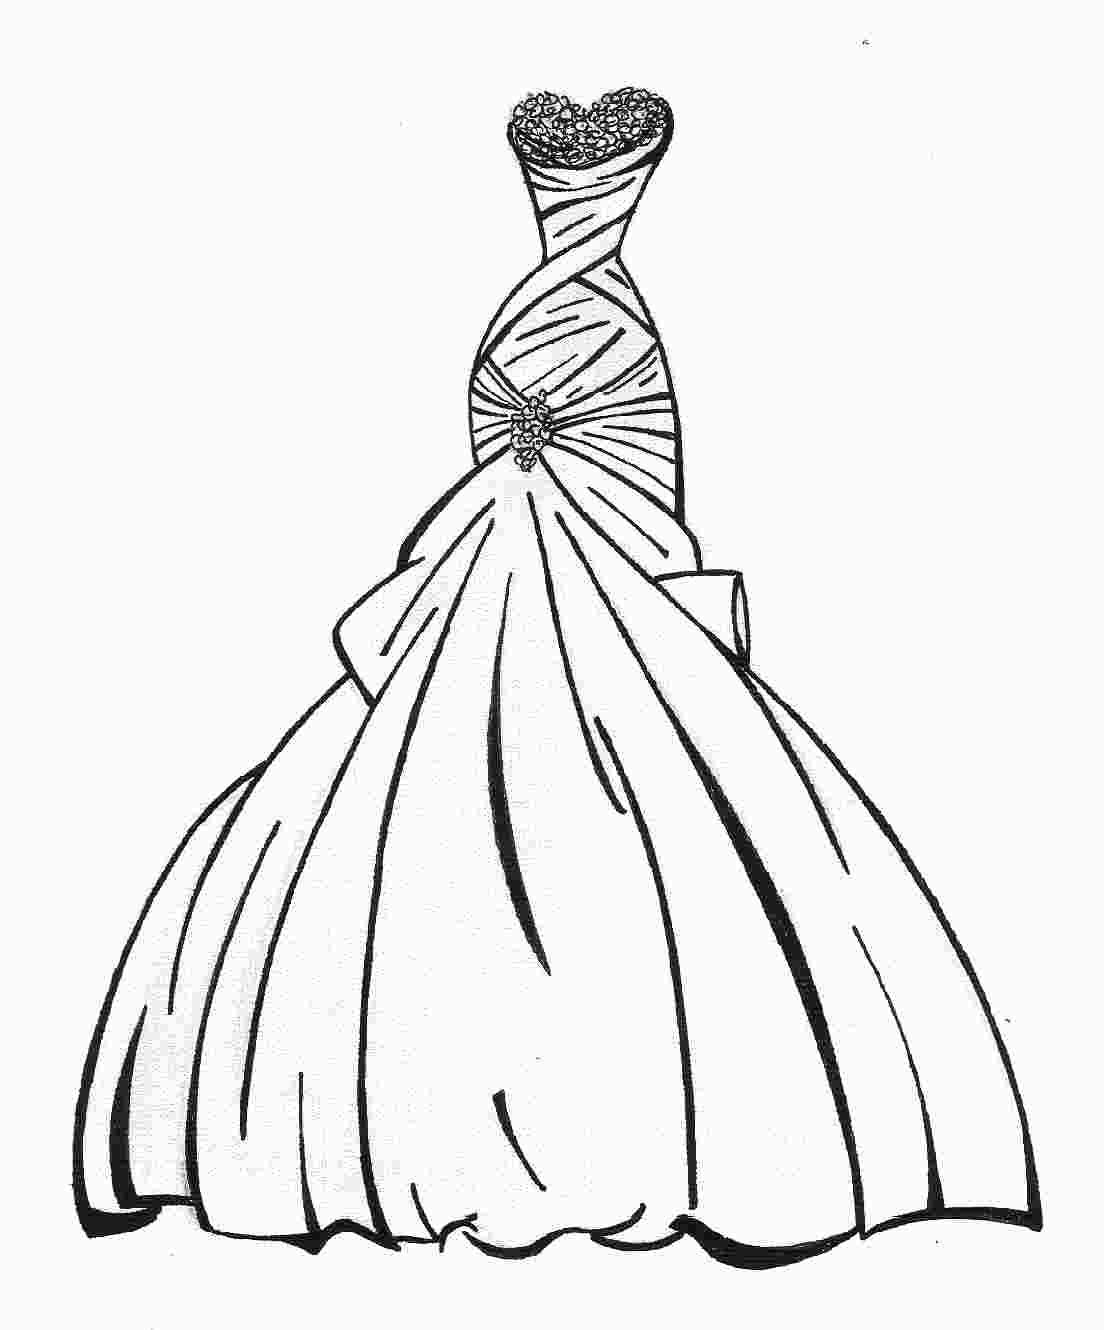 Wedding Dress Coloring Pages Coloring Pages For Girls Princess Coloring Pages Disney Princess Coloring Pages